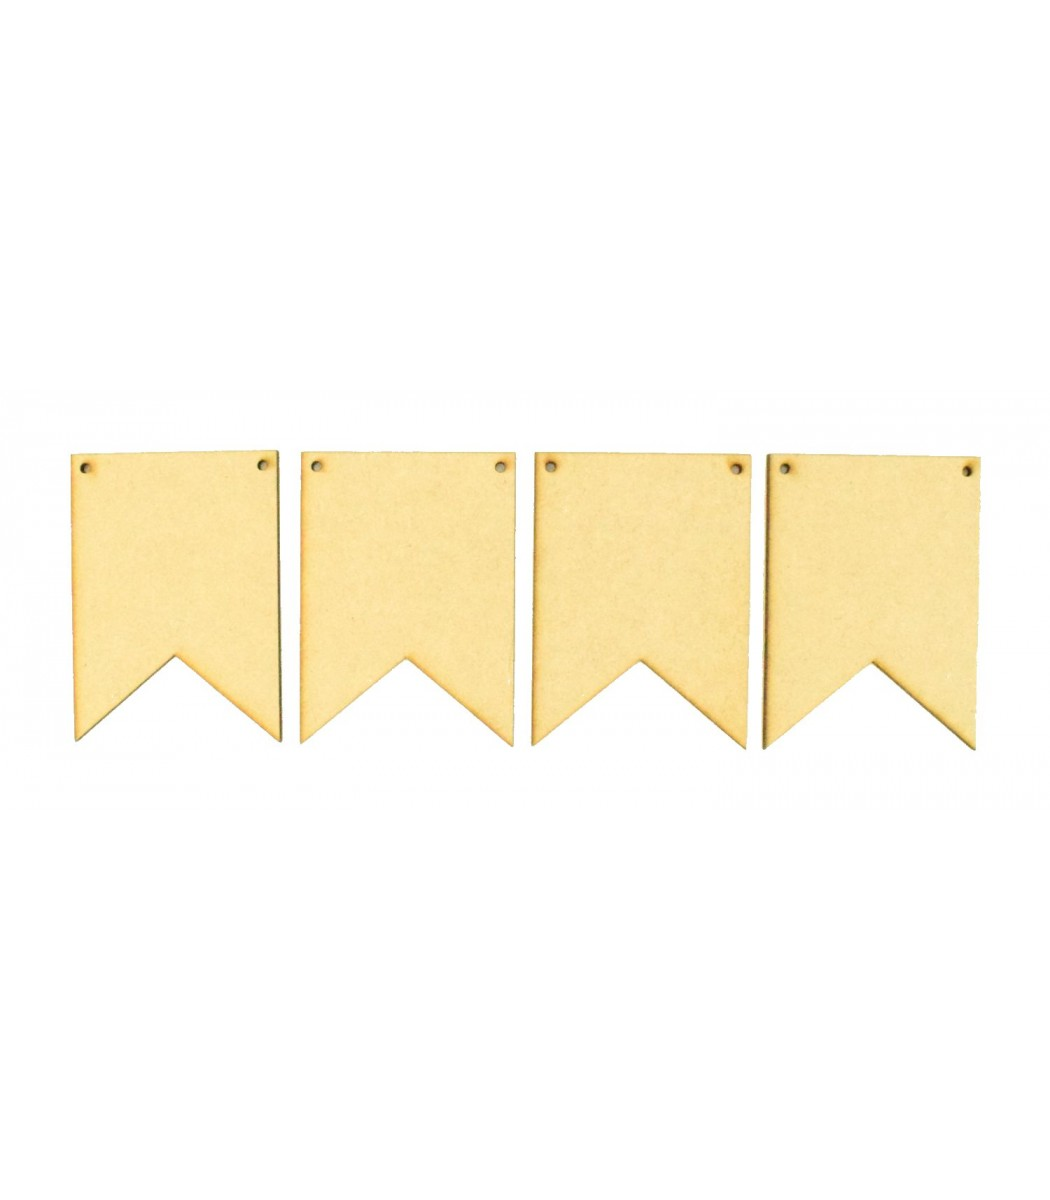 10 Pack Plywood Wooden Craft Shape Blank Banner